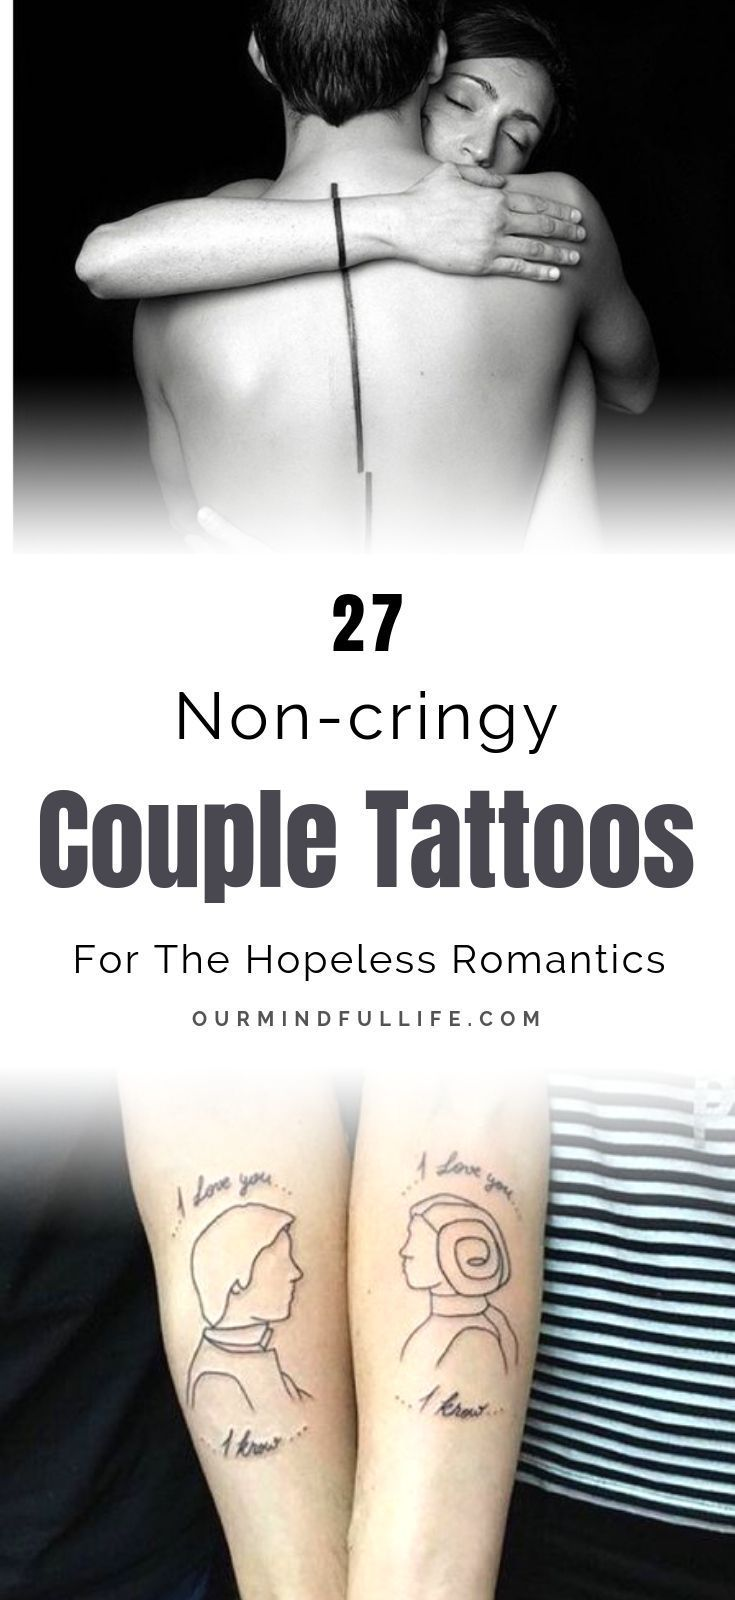 109 Hopelessly Romantic Couple Tattoos That Are Better Than A Ring Meaningful Tattoos For Couples Romantic Couples Tattoos Married Couple Tattoos